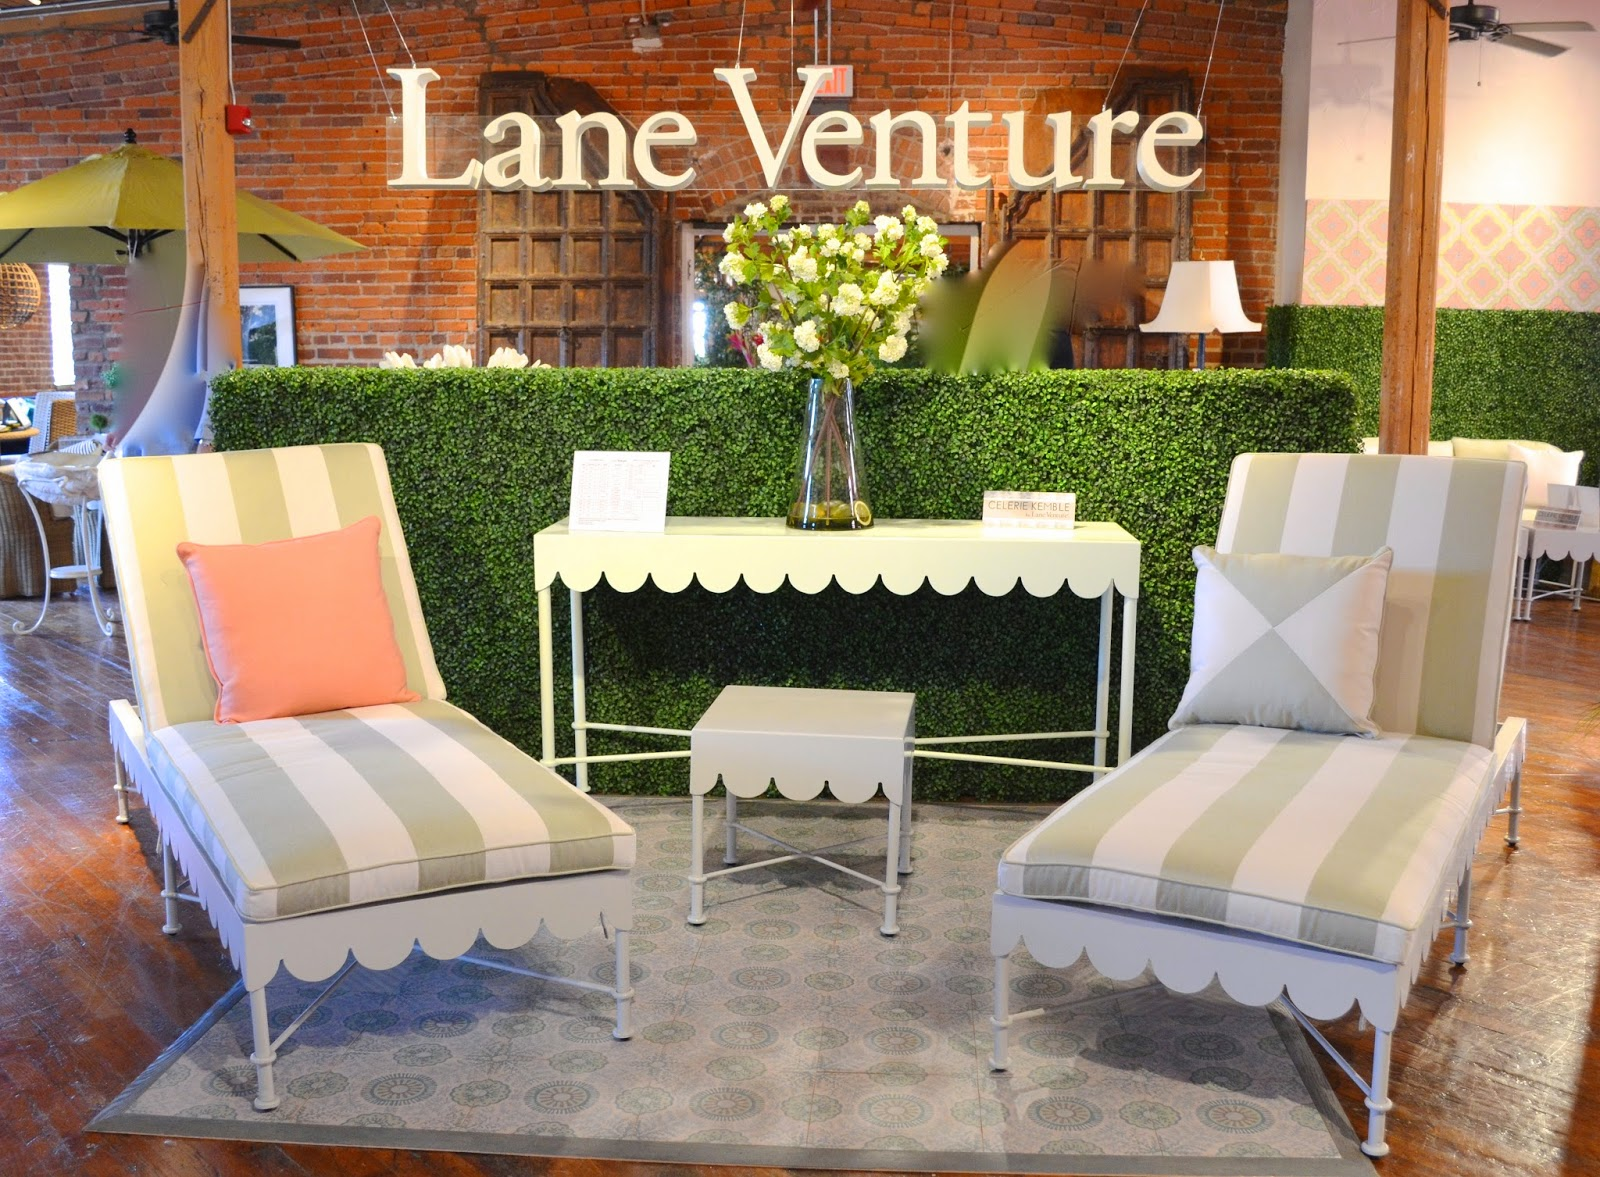 Celerie Kemble For Lane Venture